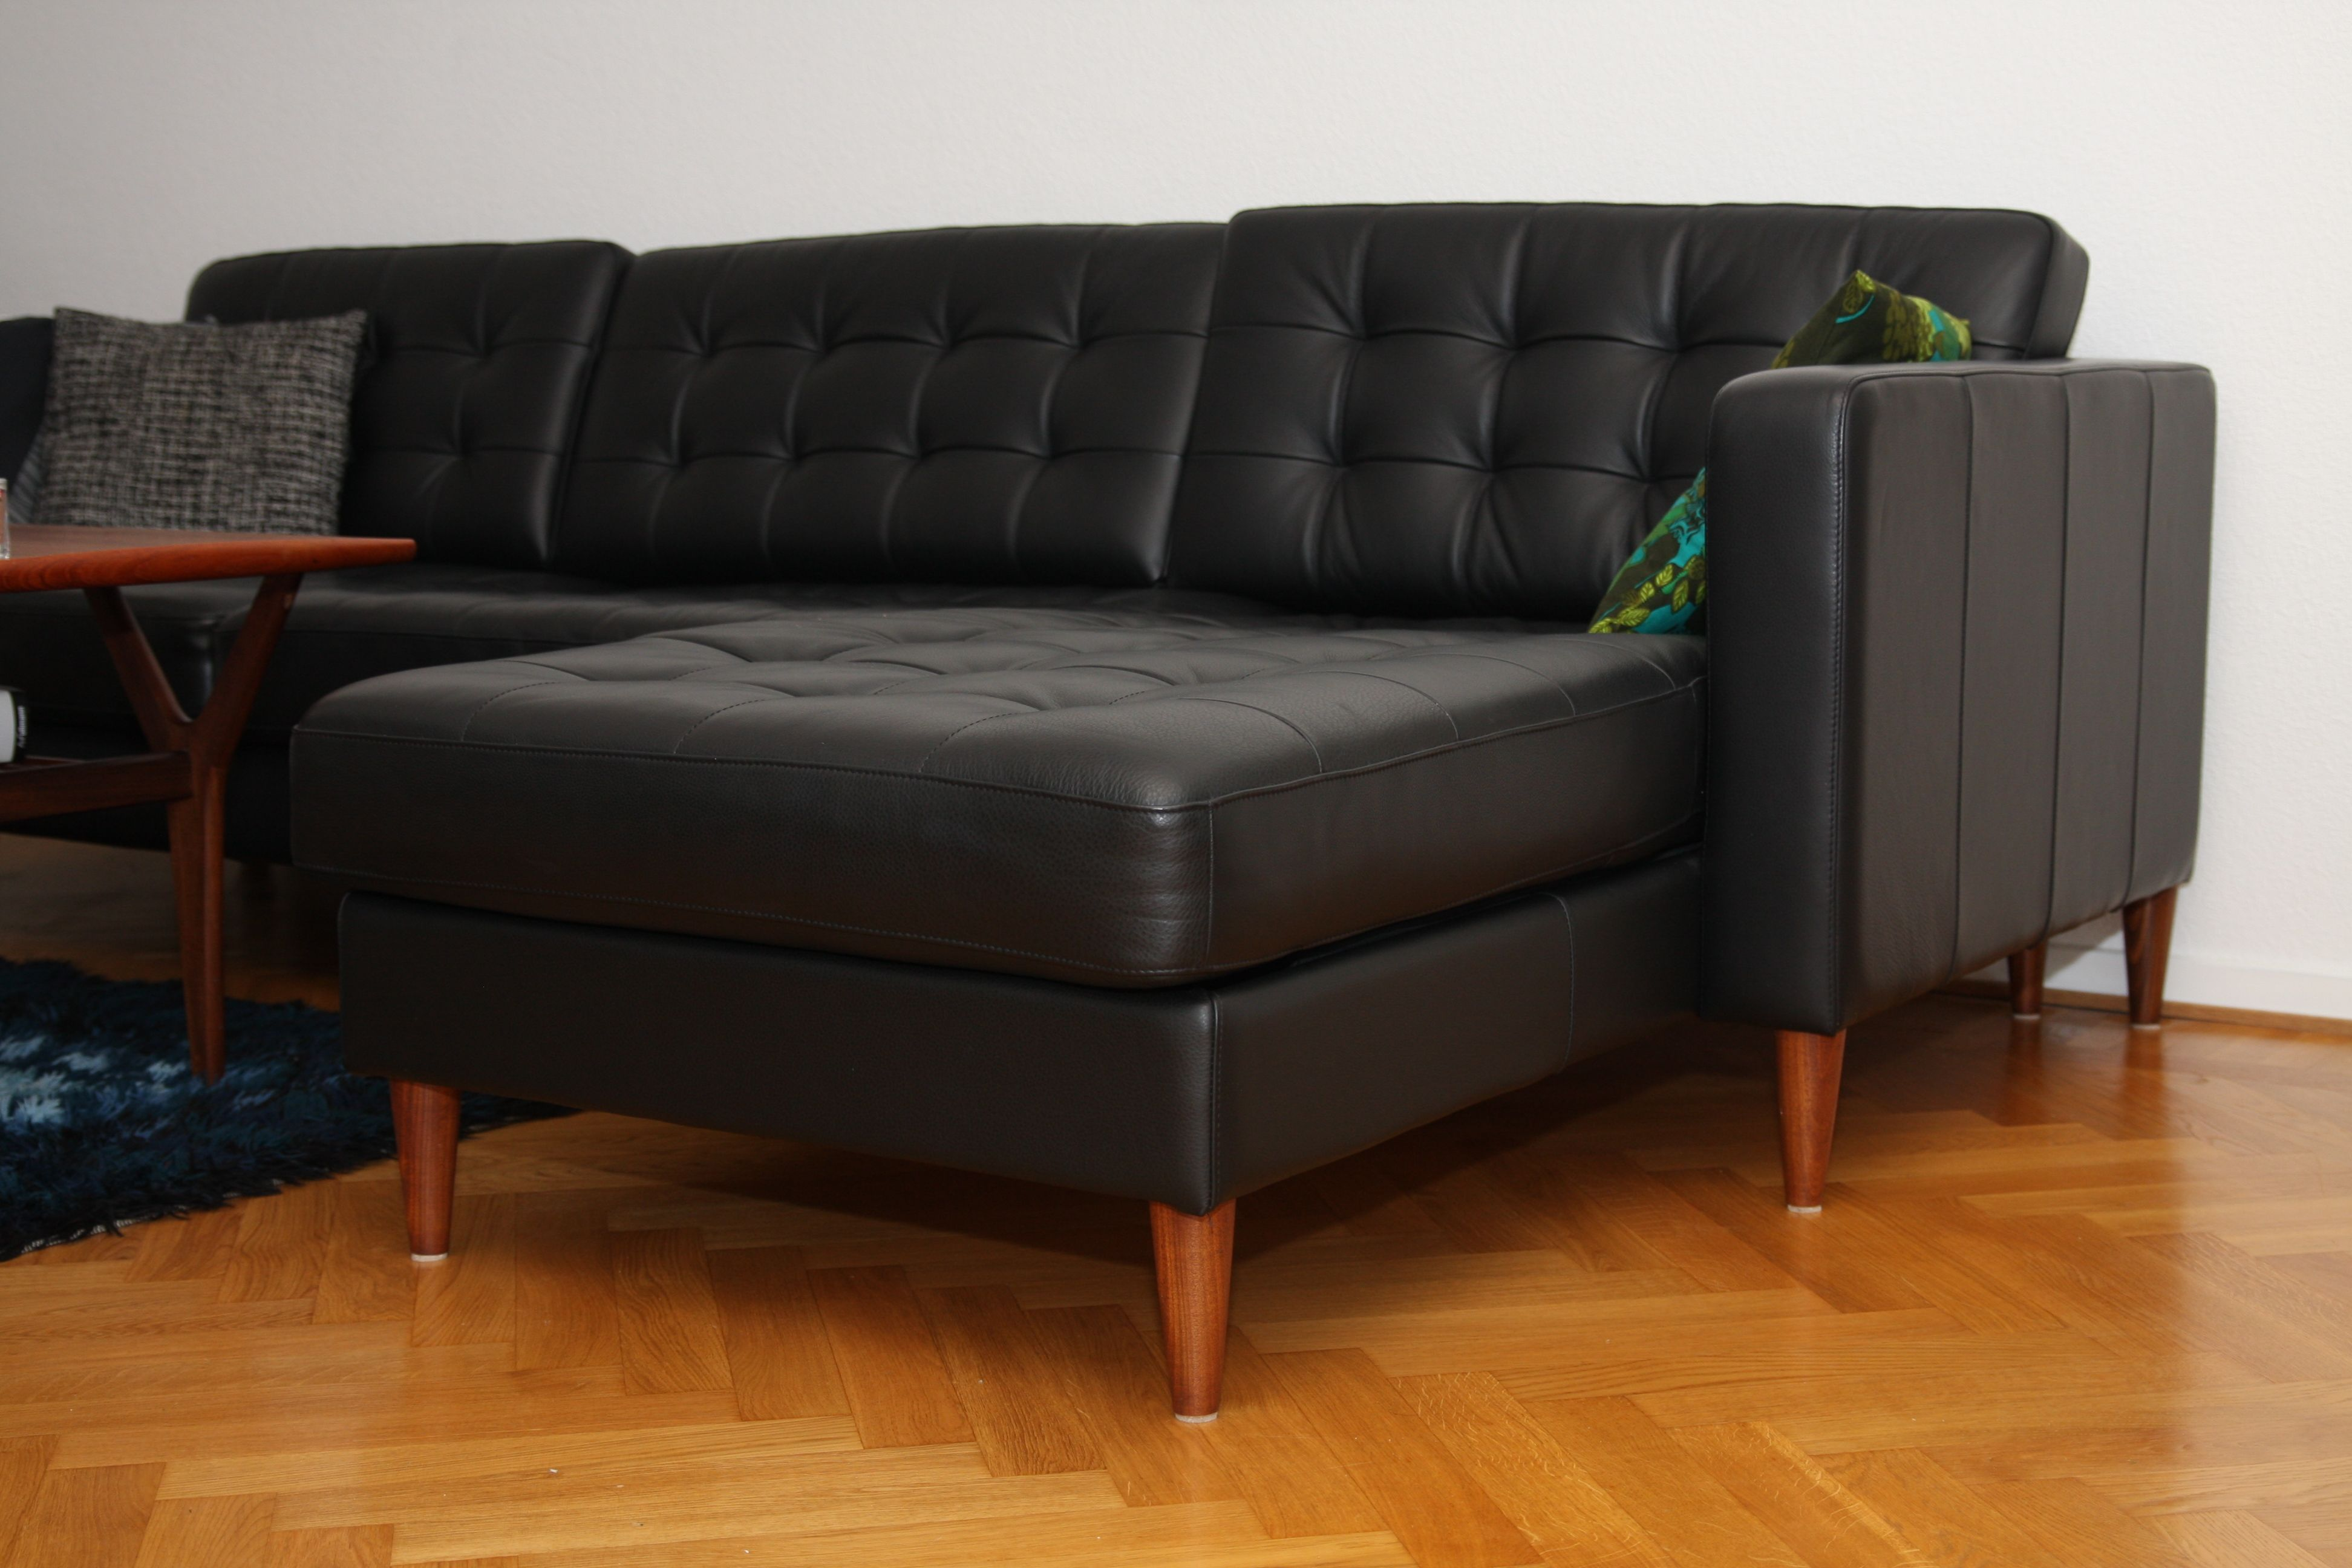 Ikea leather chair brown - Click To Close Image Click And Drag To Move Use Arrow Keys For Next Sofa Legsikea